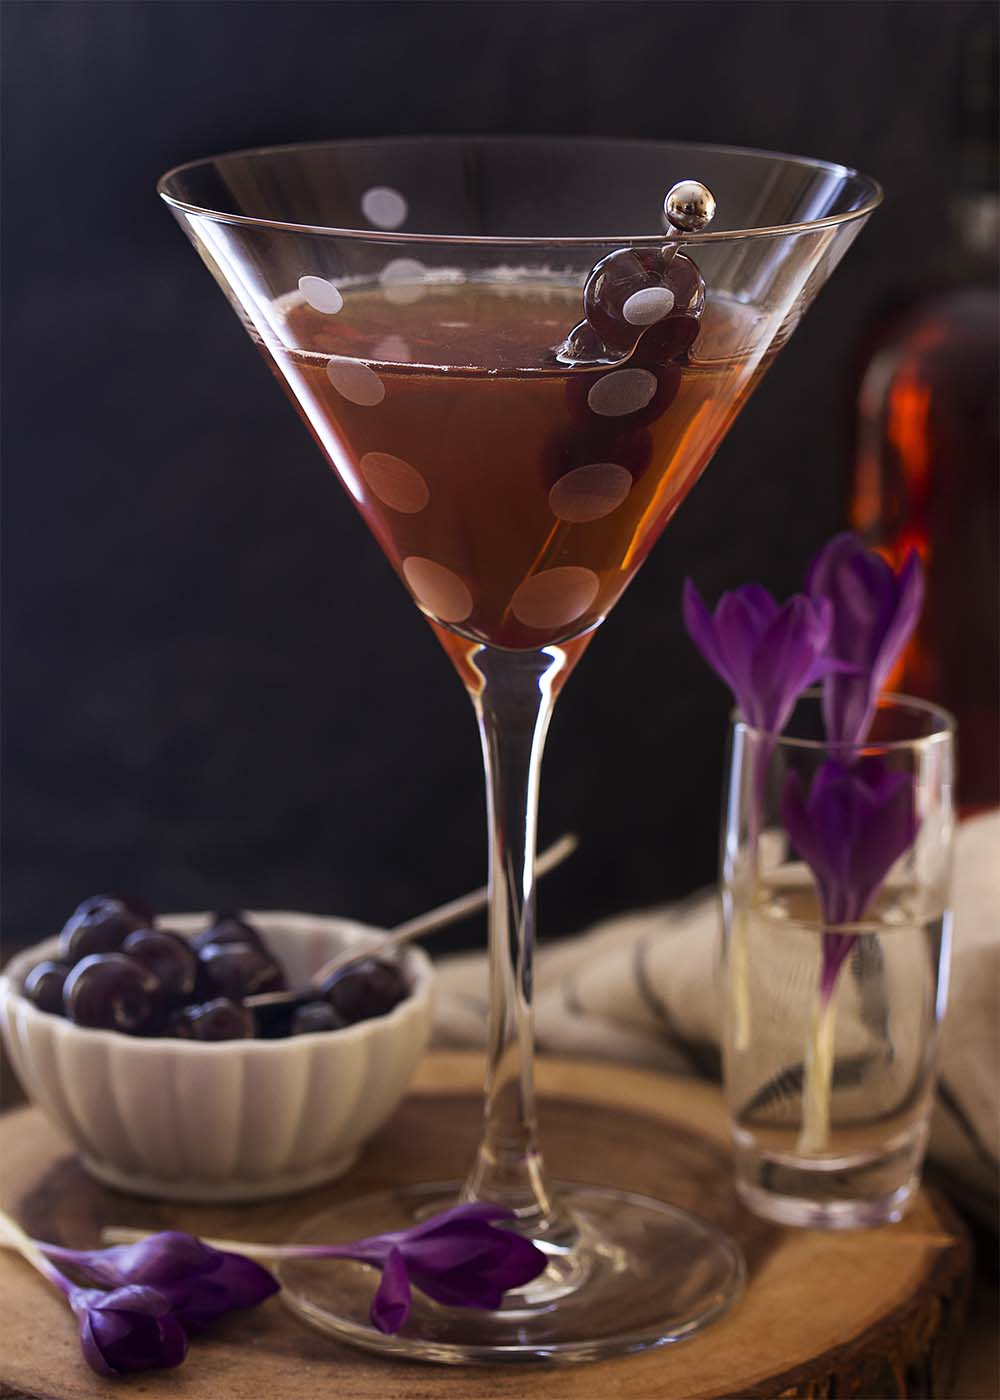 A tall martini glass containing a classic Manhattan garnished with Amarena cherries.